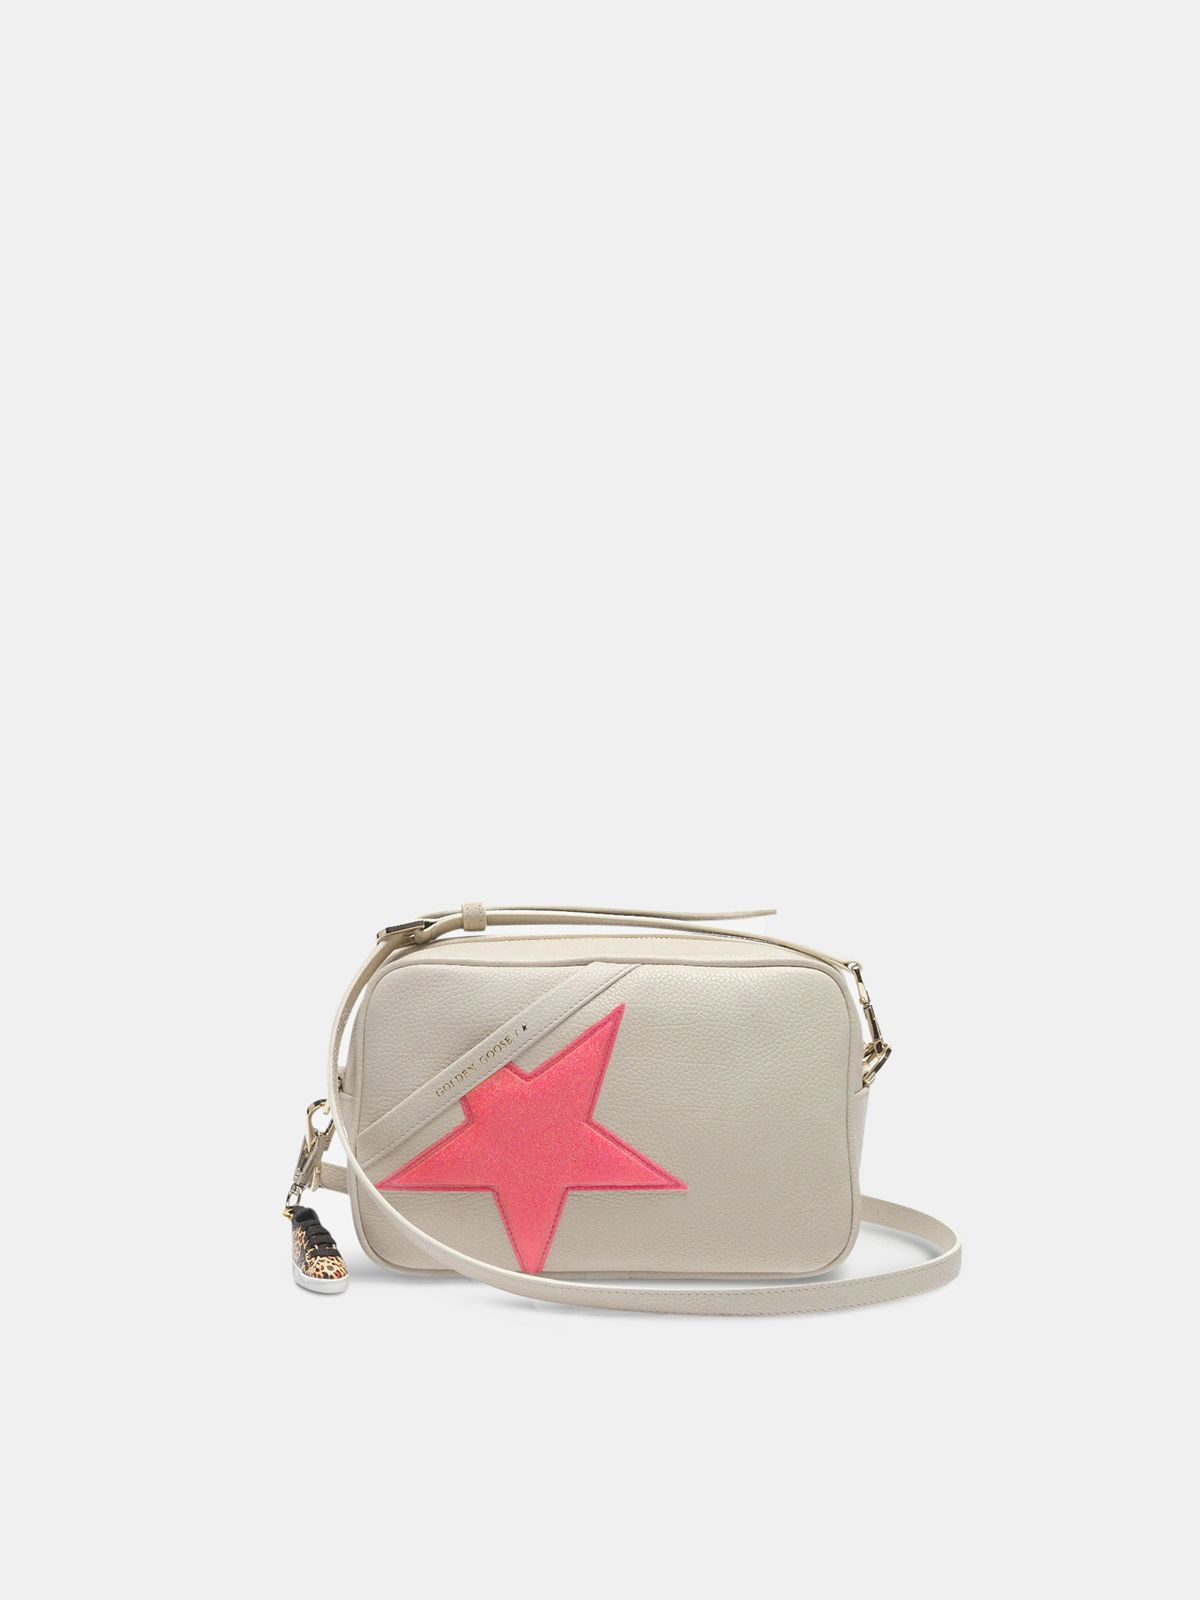 Star Bag made of pebbled leather with neon pink star